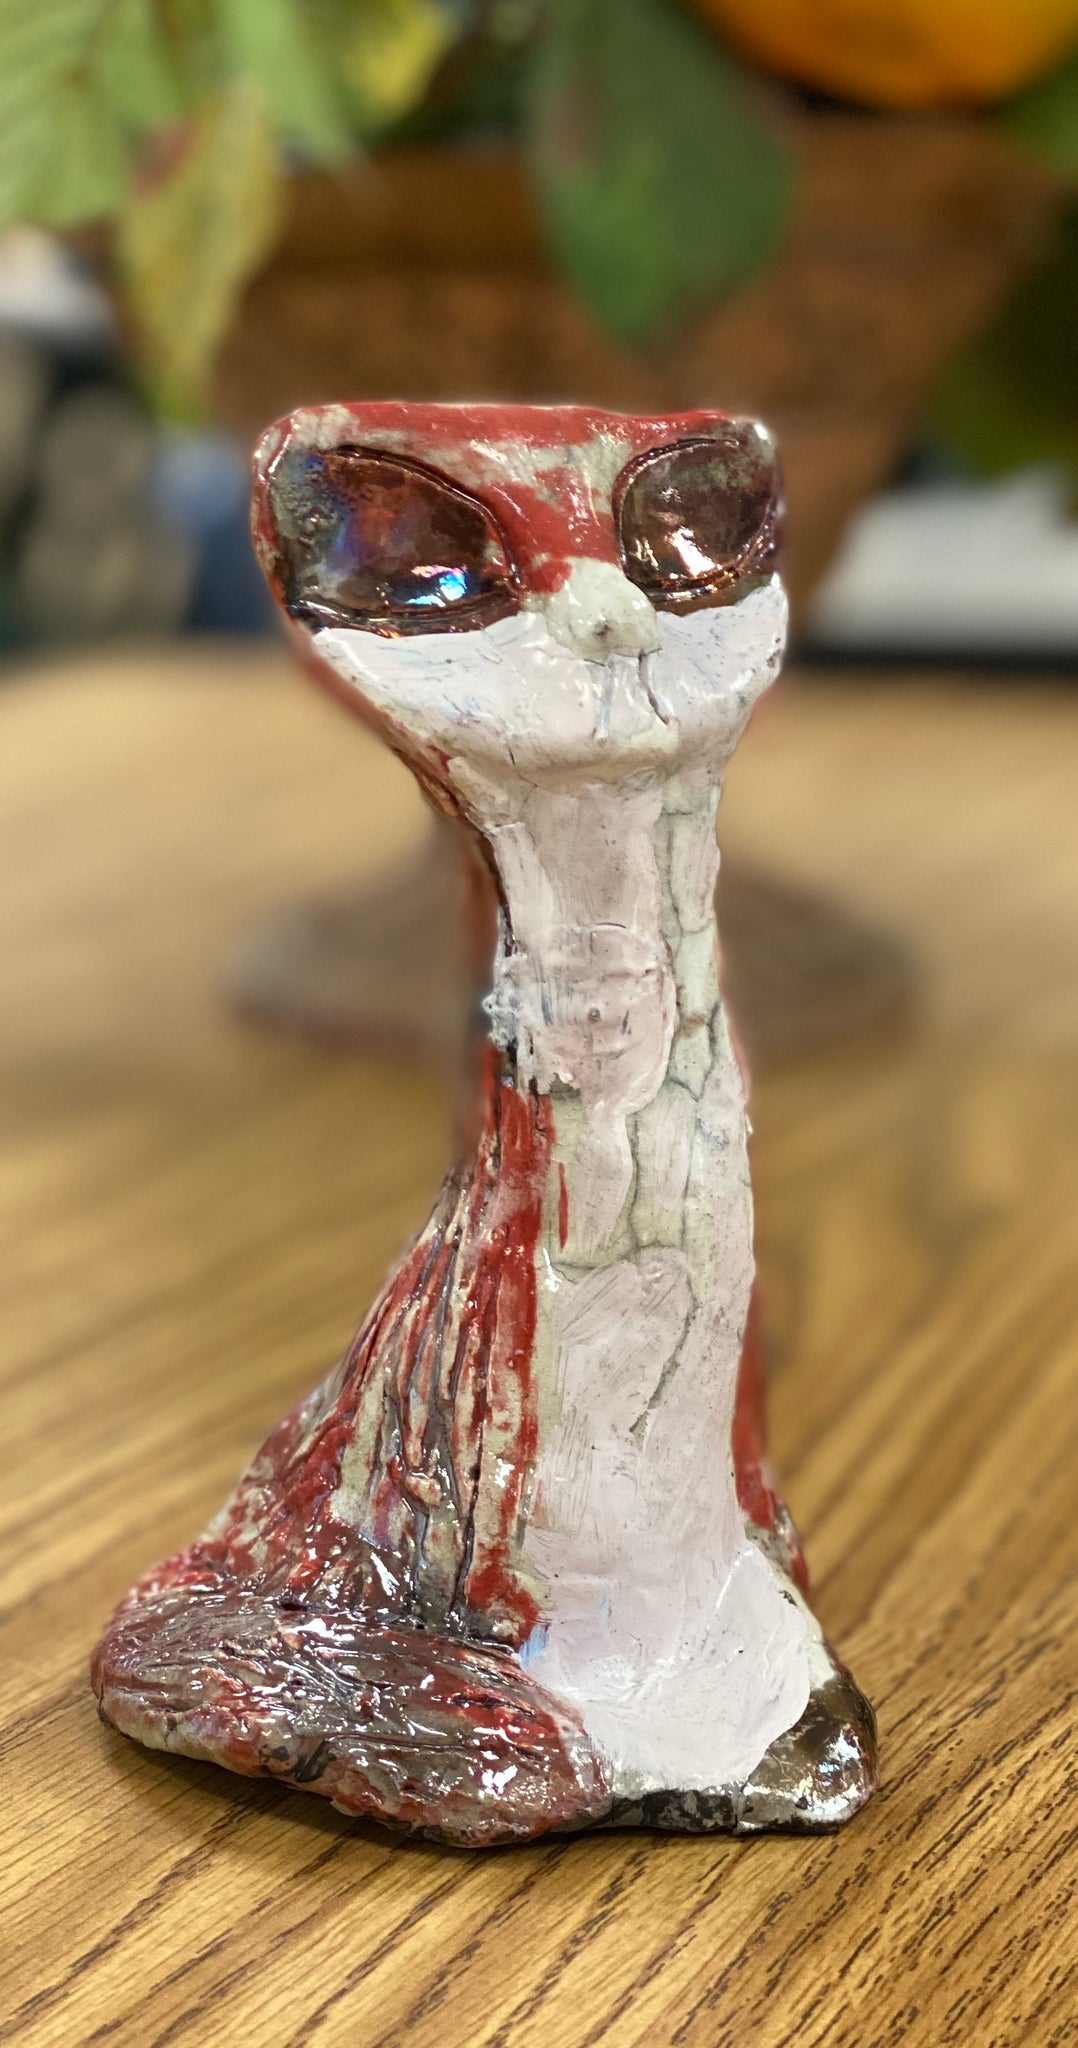 "Catina! A really long neck arrogant cat! Beautiful red and copper glazes 5.5"" x 3.5"" x 3.5"" Need a home."